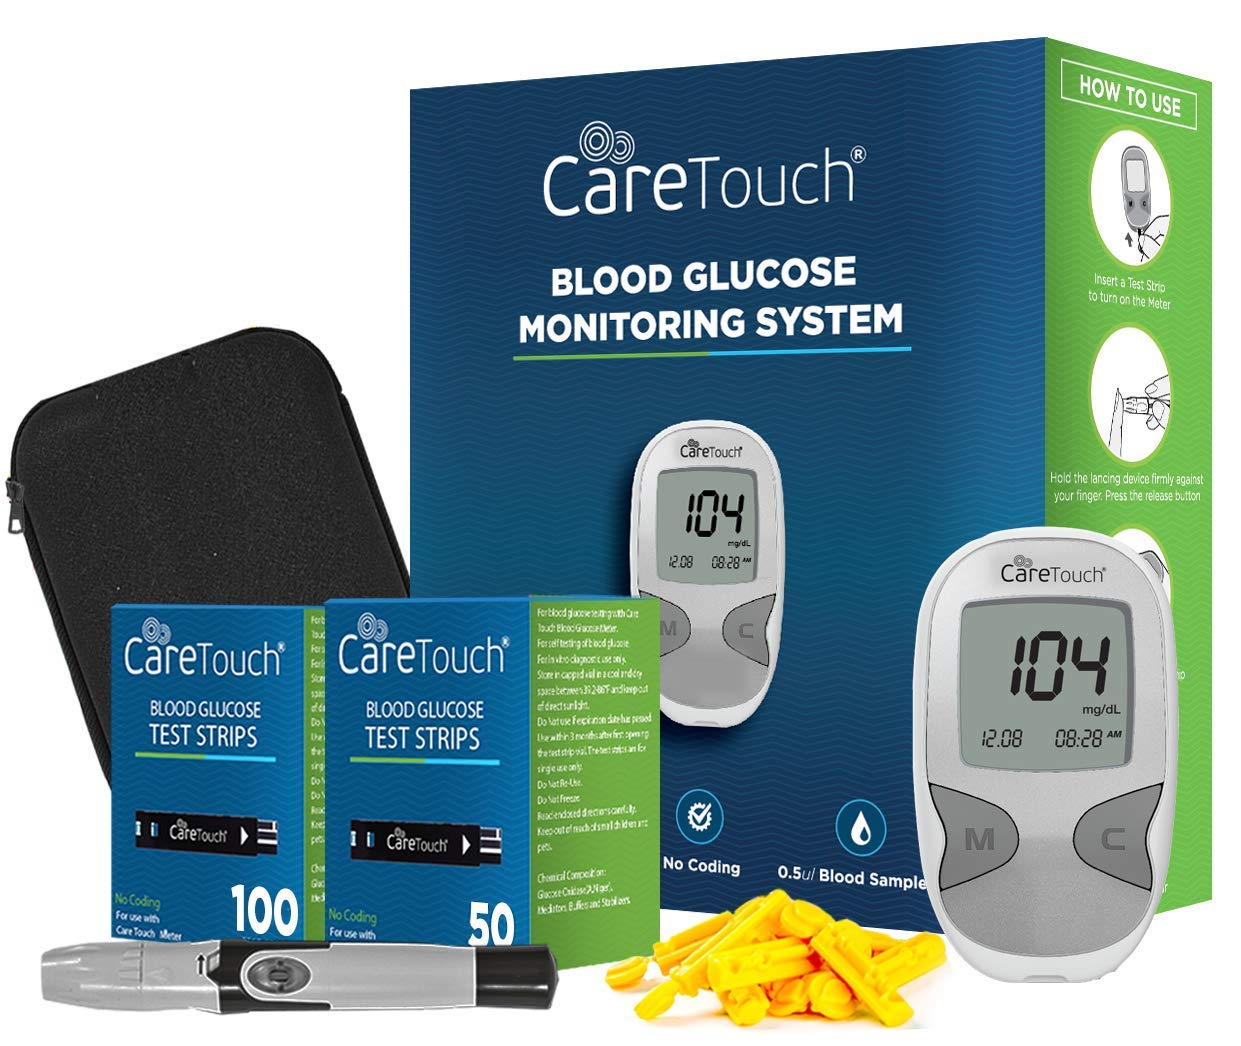 Care Touch Diabetes Testing Kit – Care Touch Blood Glucose Meter, 150 Blood Test Strips, 1 Lancing Device, 30 Gauge Lancets-with Carrying Case